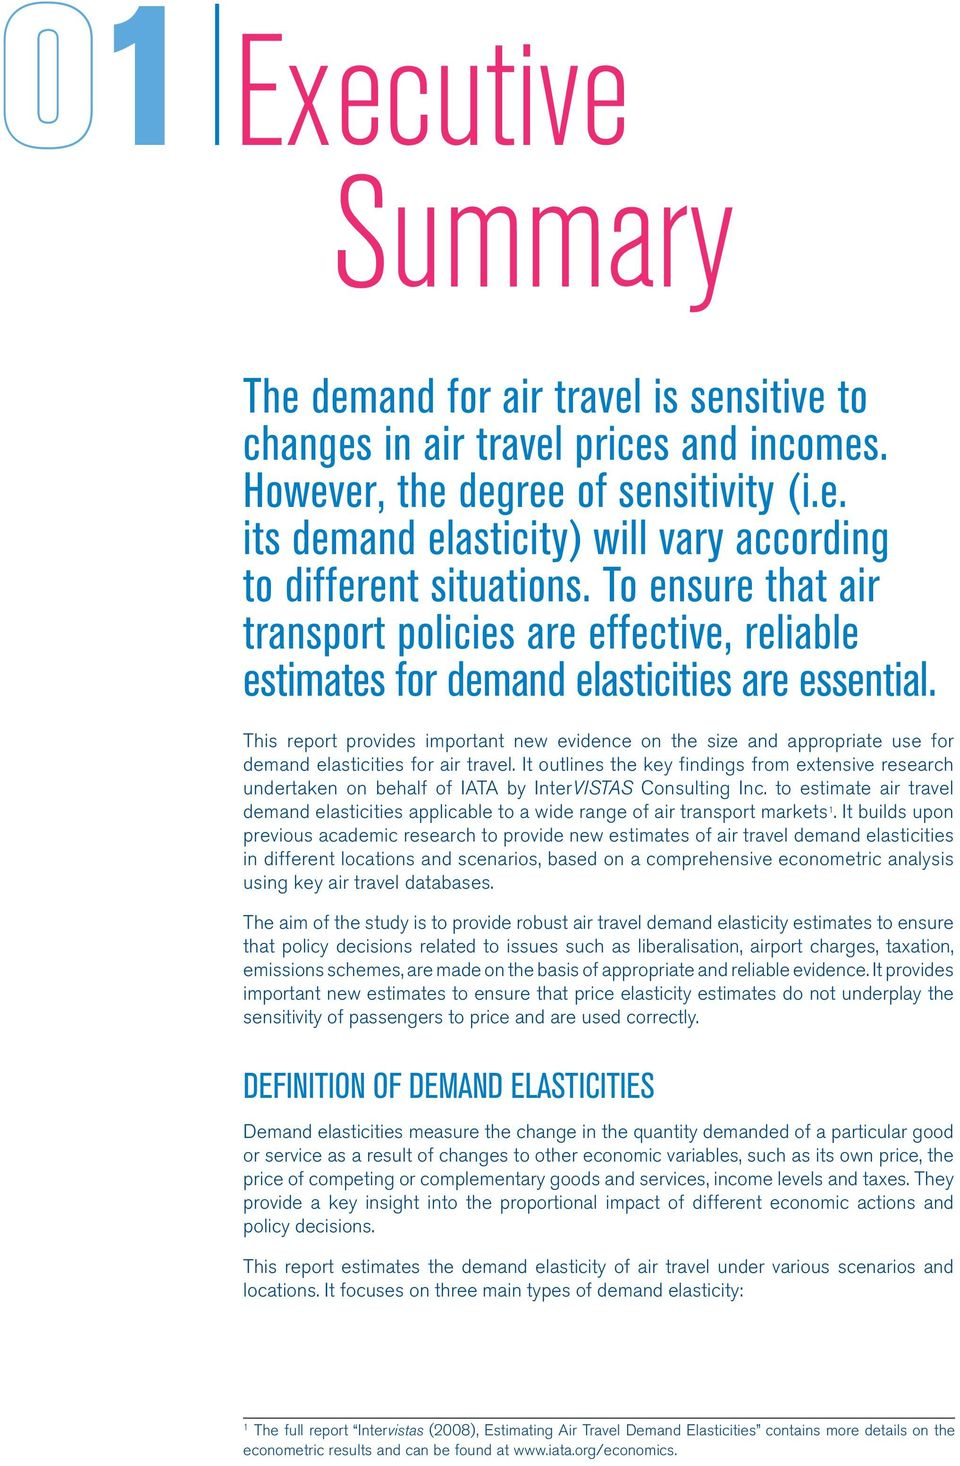 This report provides important new evidence on the size and appropriate use for demand elasticities for air travel.